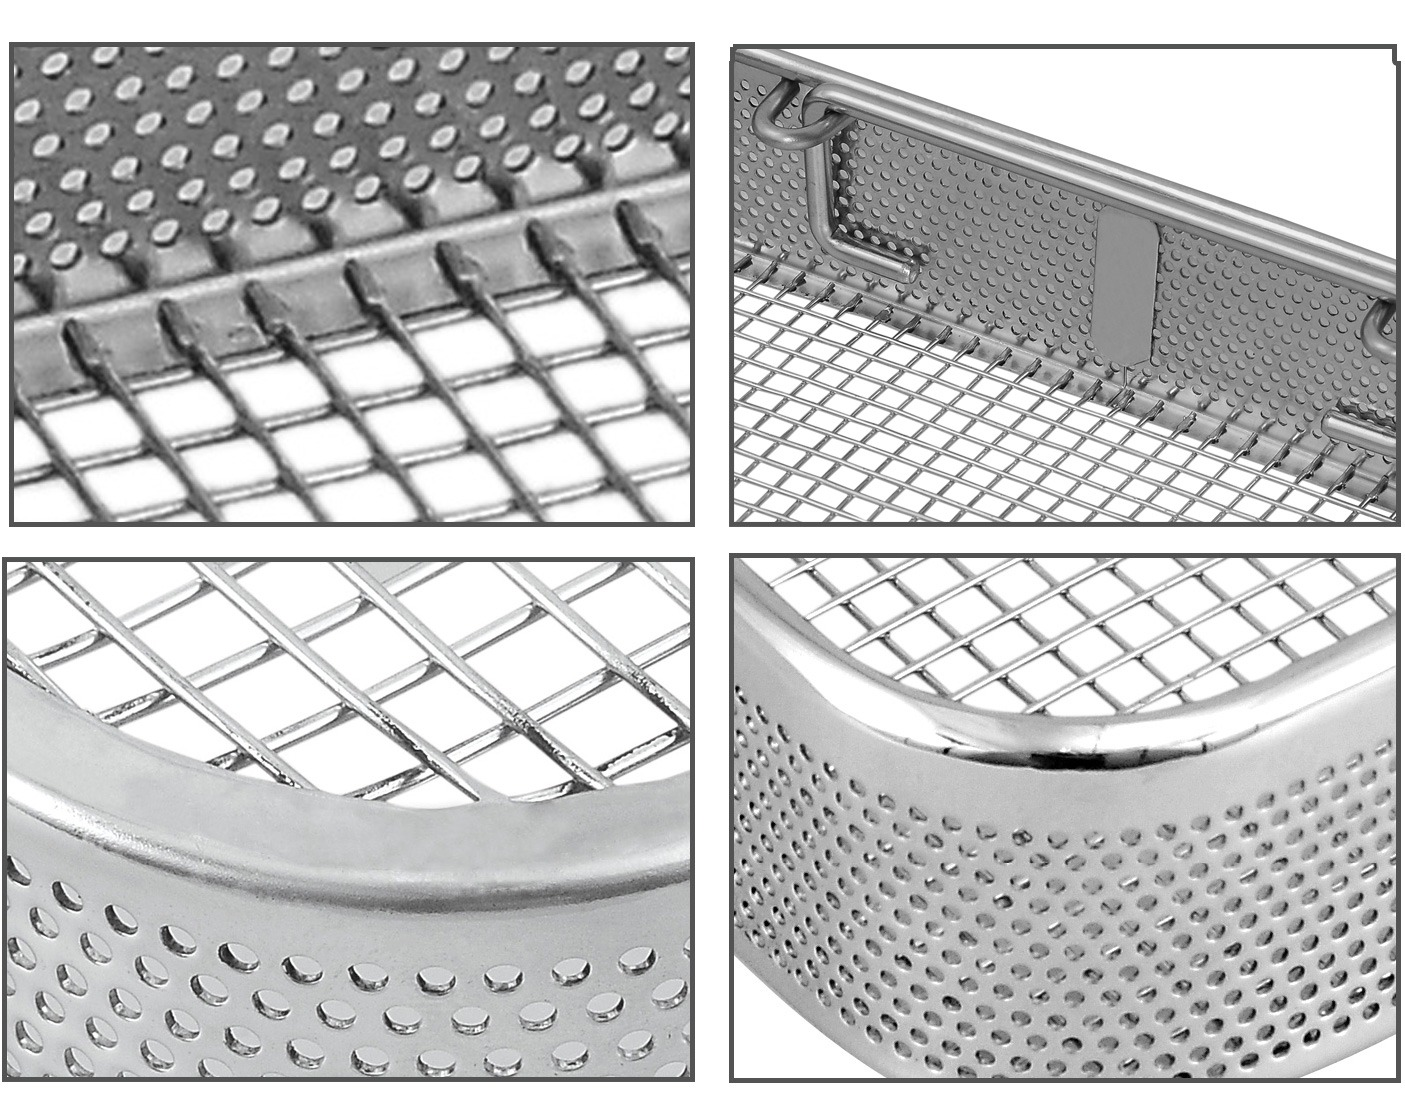 Detail images of the side perforated baskets